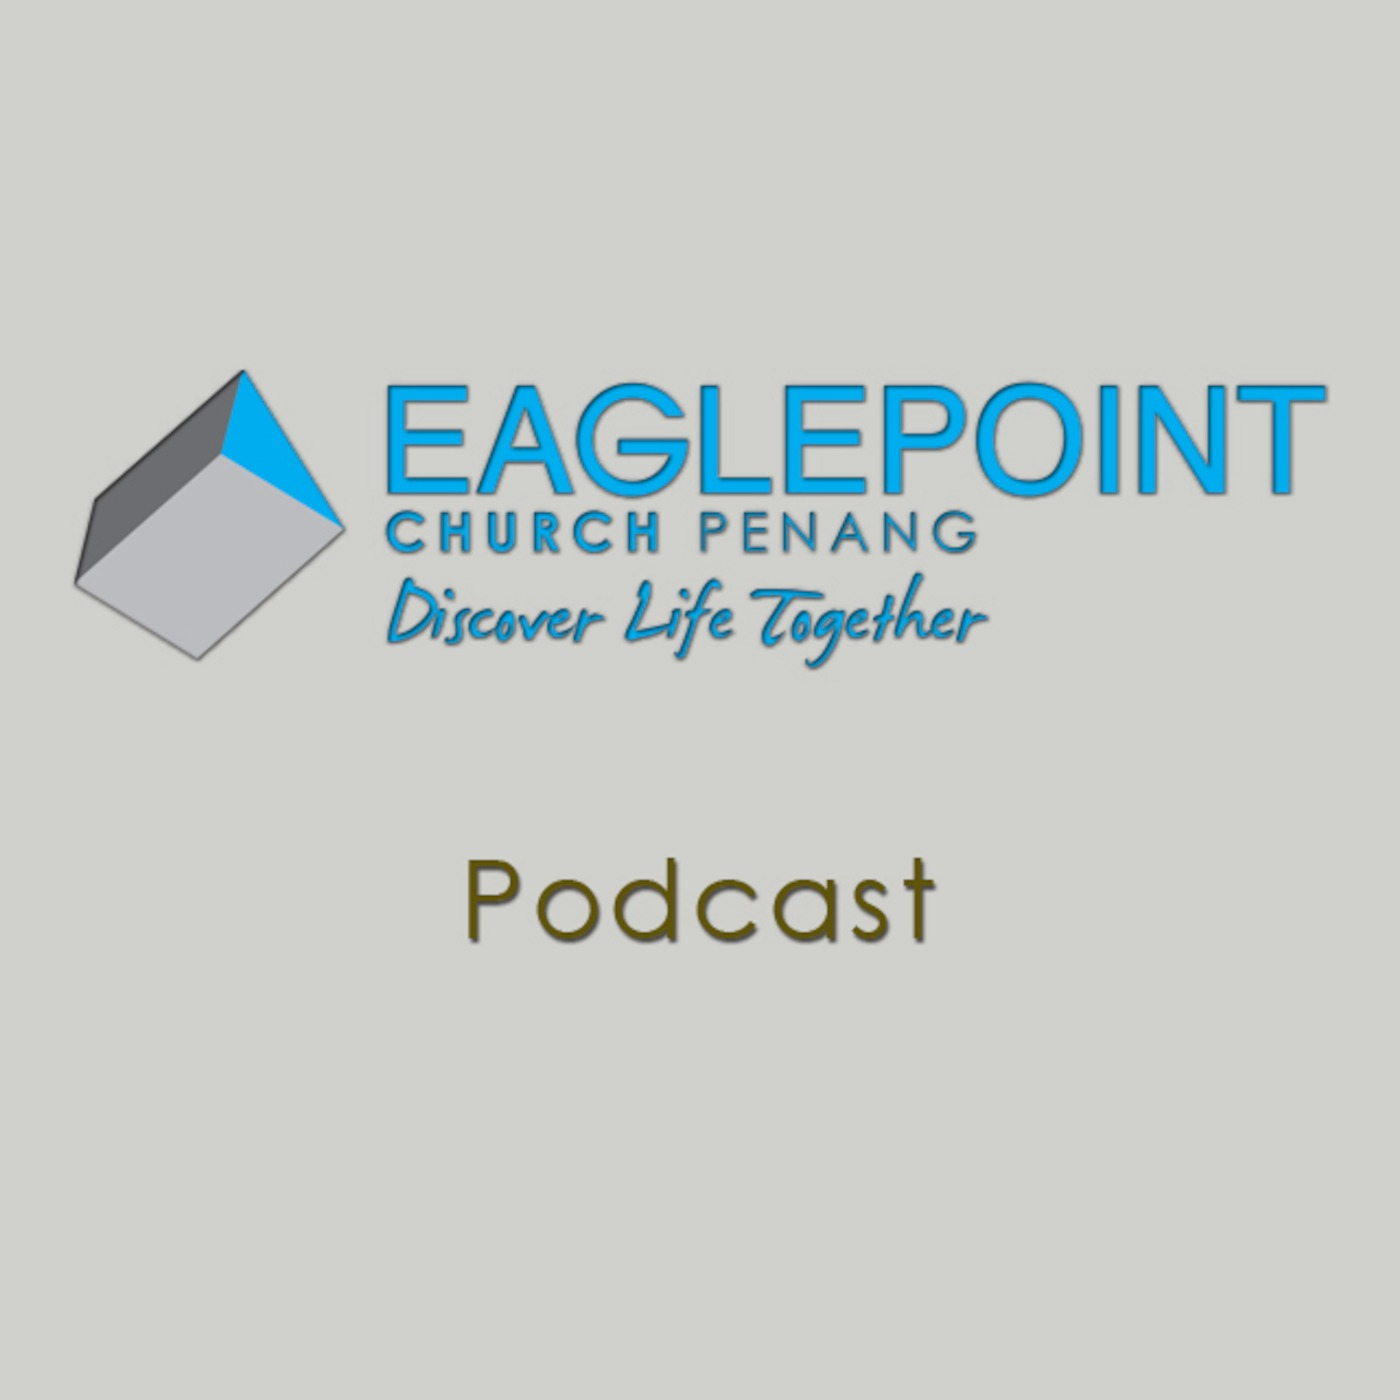 Eaglepoint Church Penang